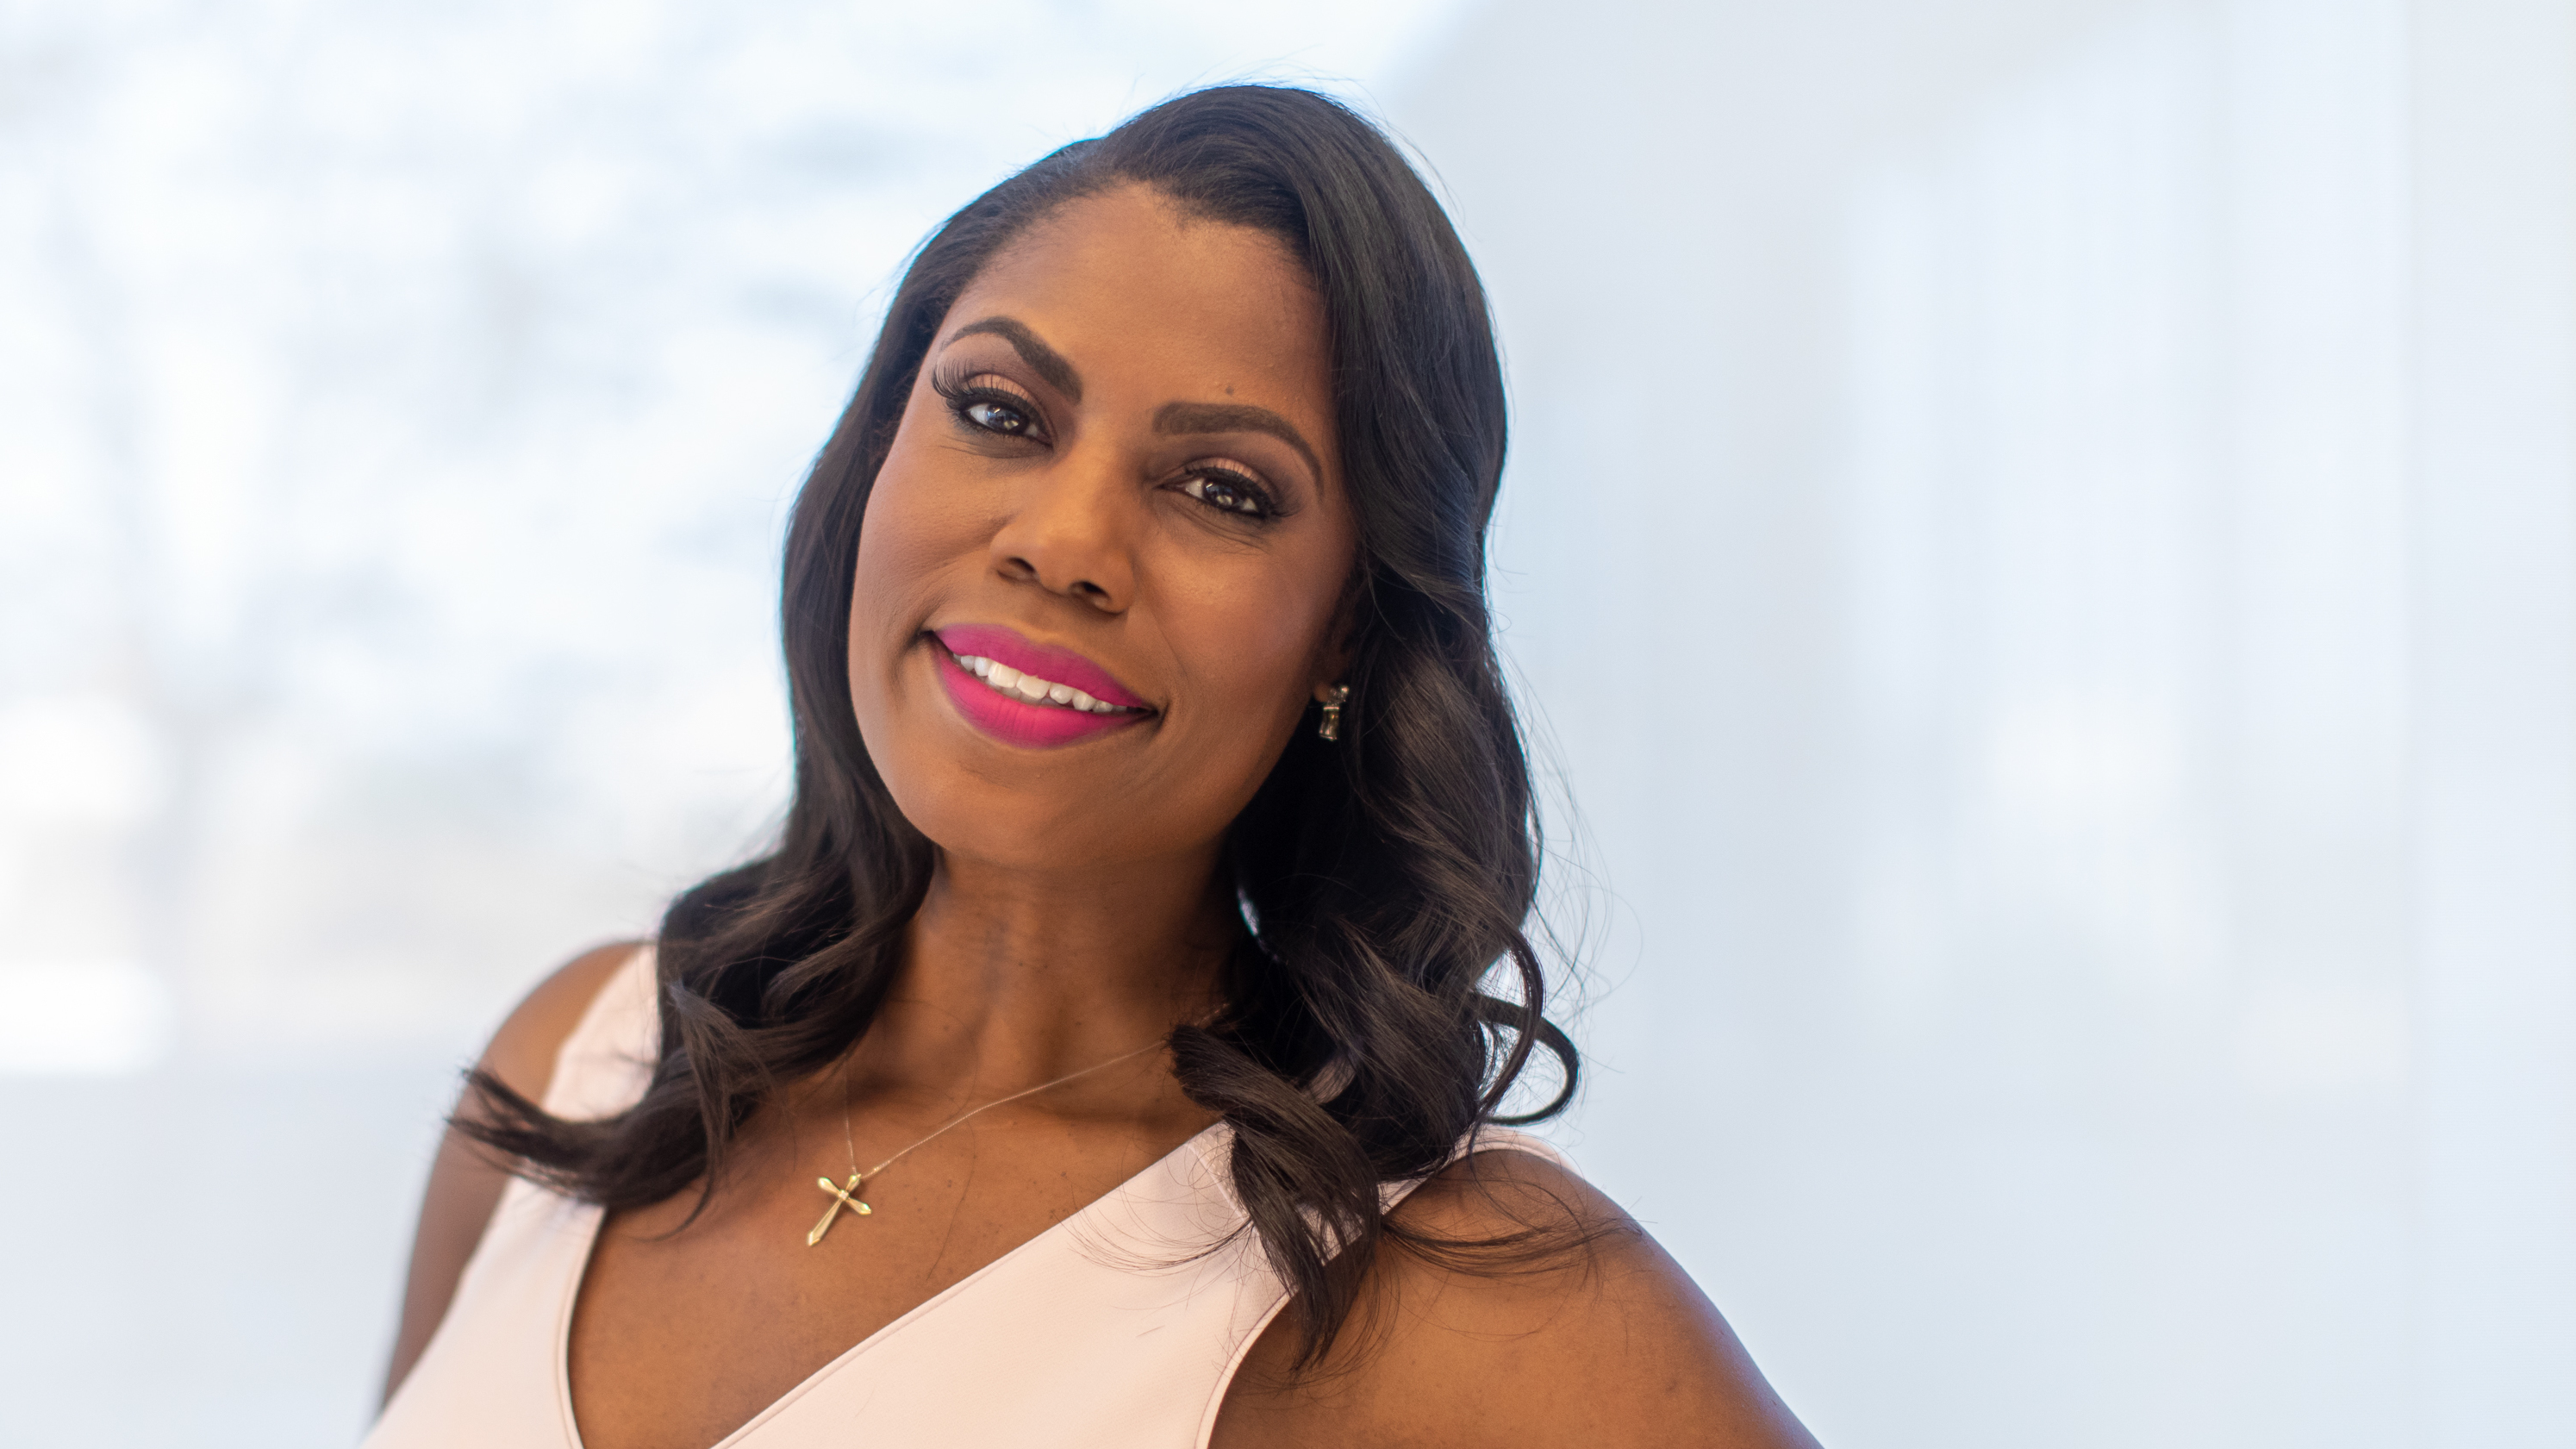 """In her new book """"Unhinged,"""" former White House aide Omarosa Manigault Newman writes as a Trump world insider overjoyed at his election while airing concerns about his rhetoric, policies and mental state."""